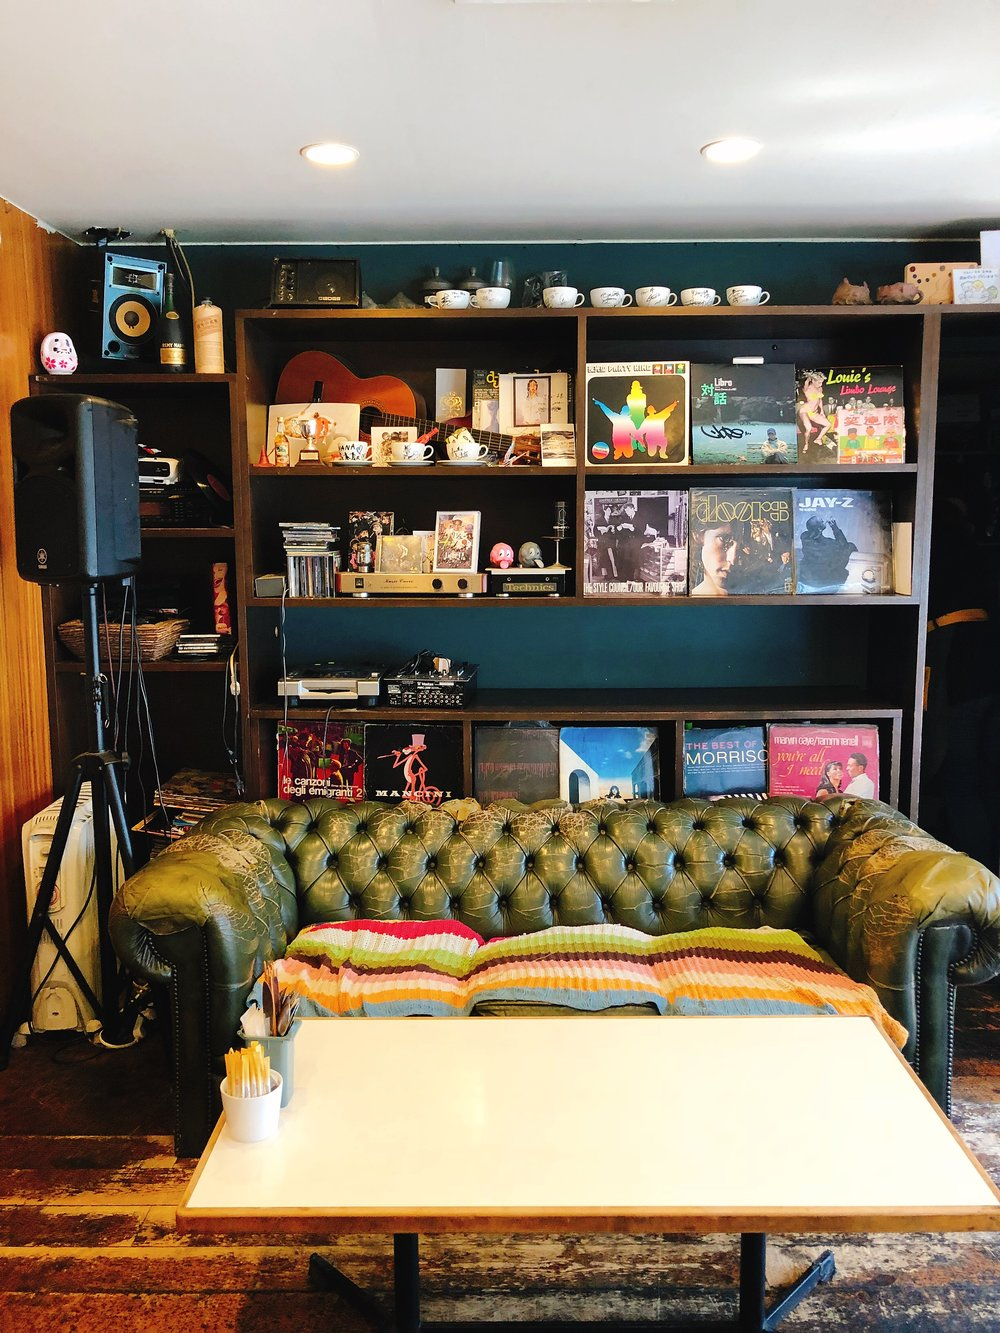 Confession: I Fell In Love With This Couch and They Vinyl Selection